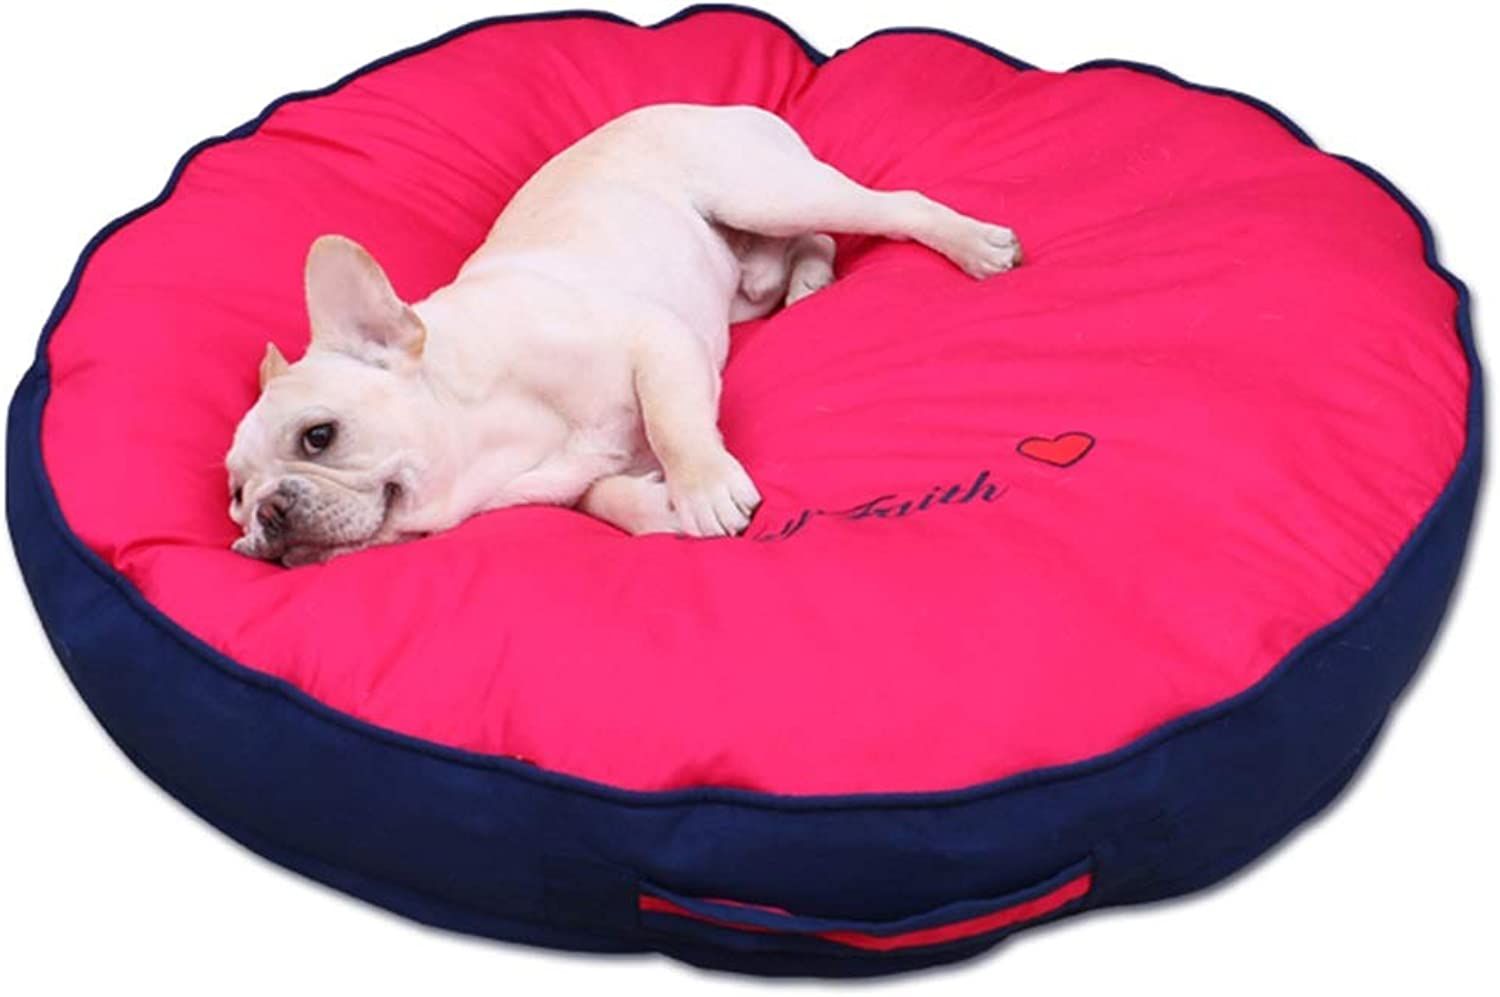 LXLA  Round Donut Pet Bed, Antistatic Cotton Cover, Suitable for Cats and Small Medium Dogs, Removable & Washable  pink Red (Size   M 60×60×10cm)